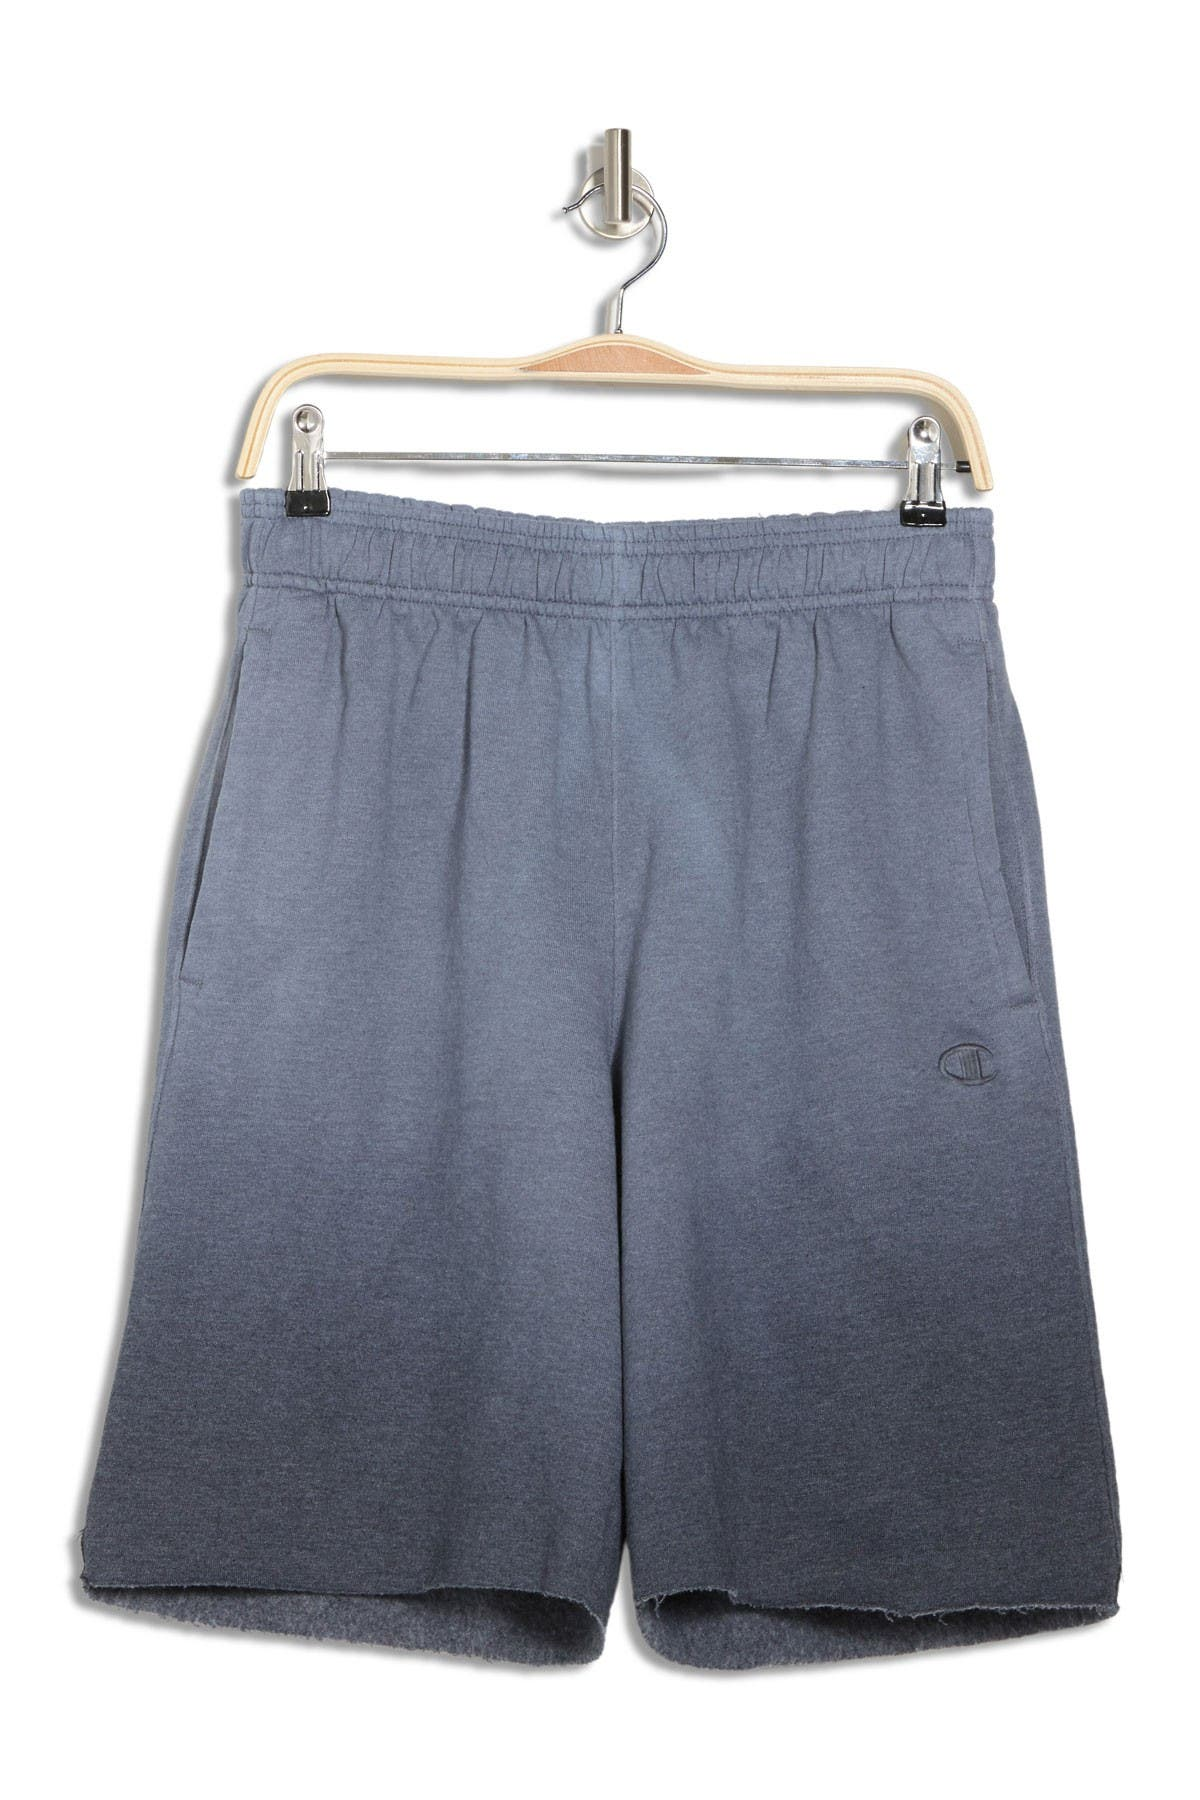 Image of Champion Powerblend Ombre Shorts